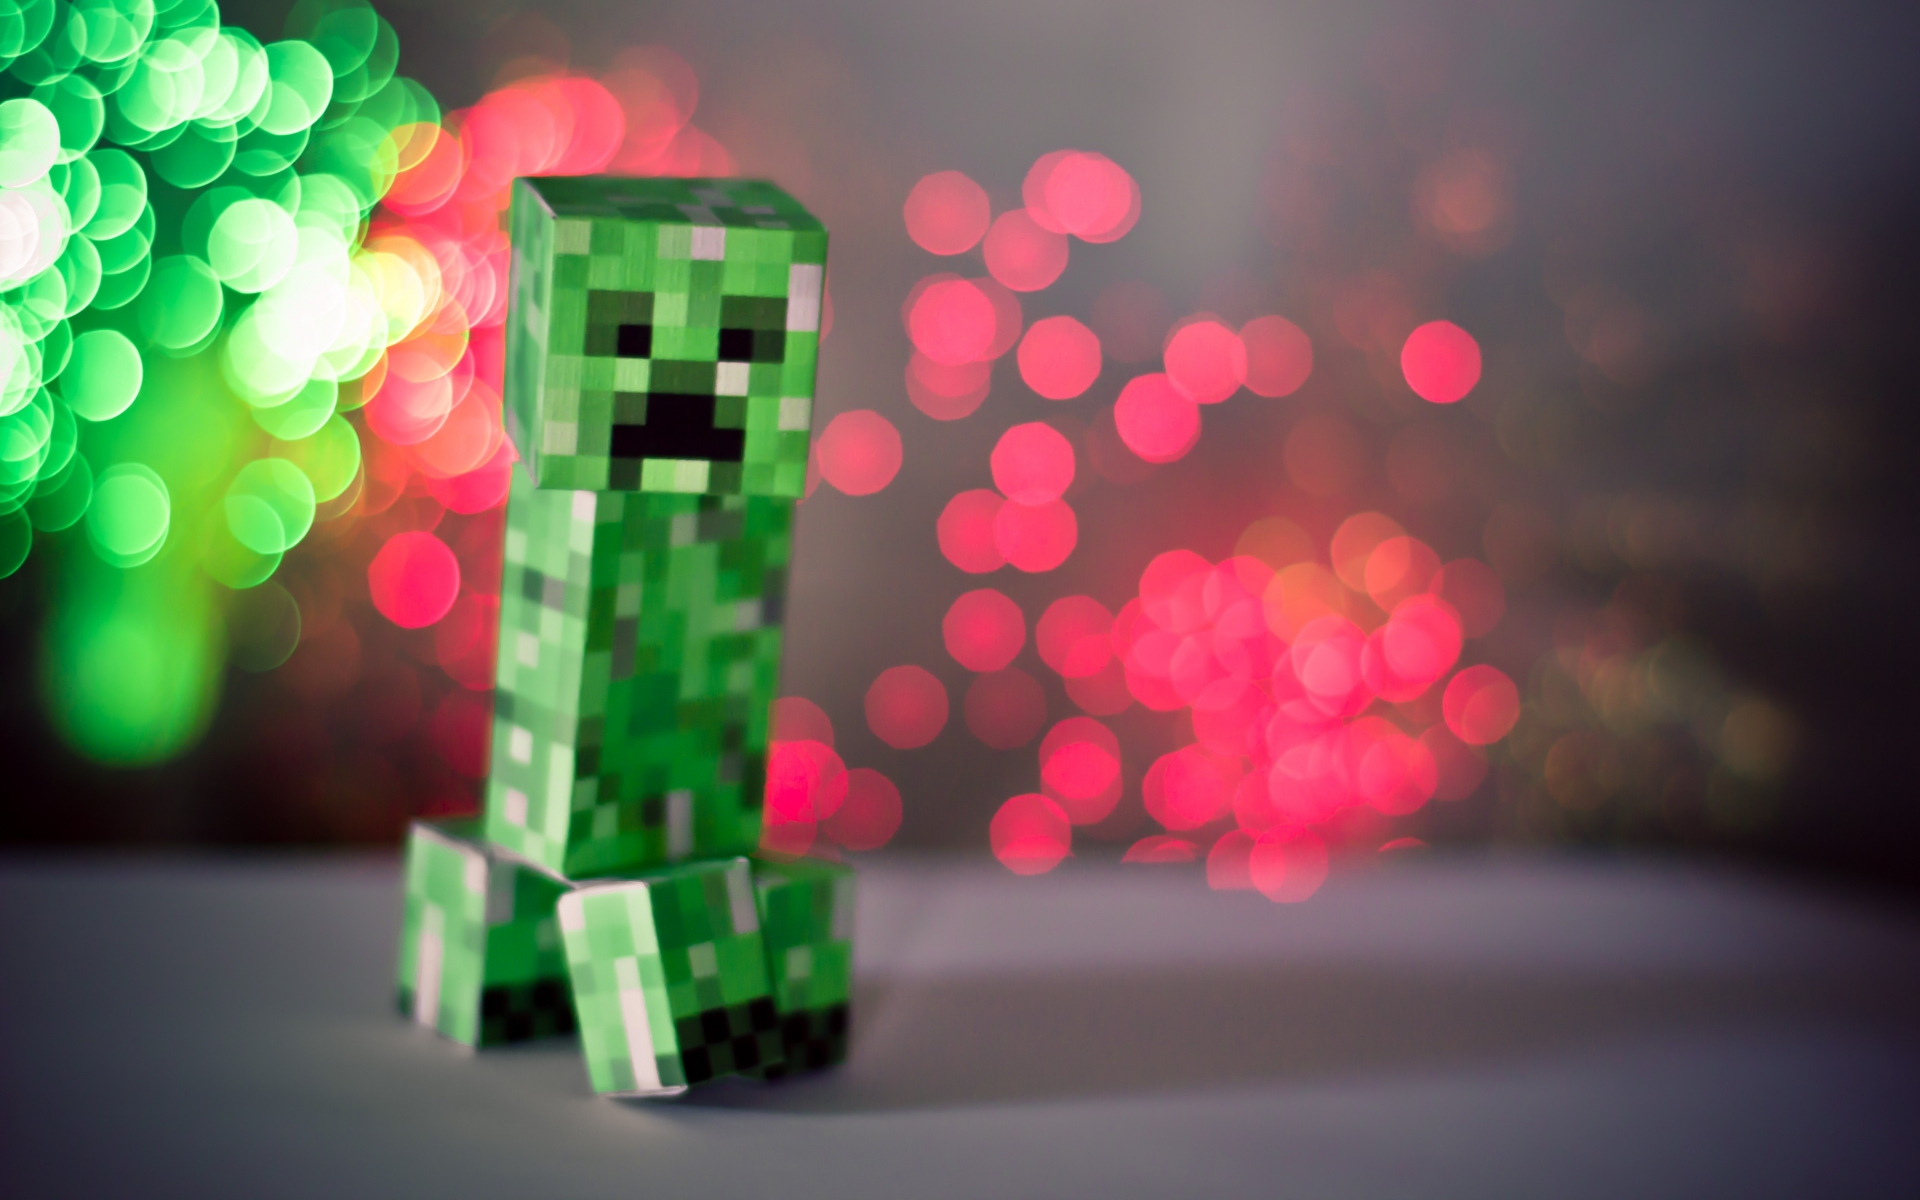 Minecraft Creeper Wallpaper Minecraftrocket